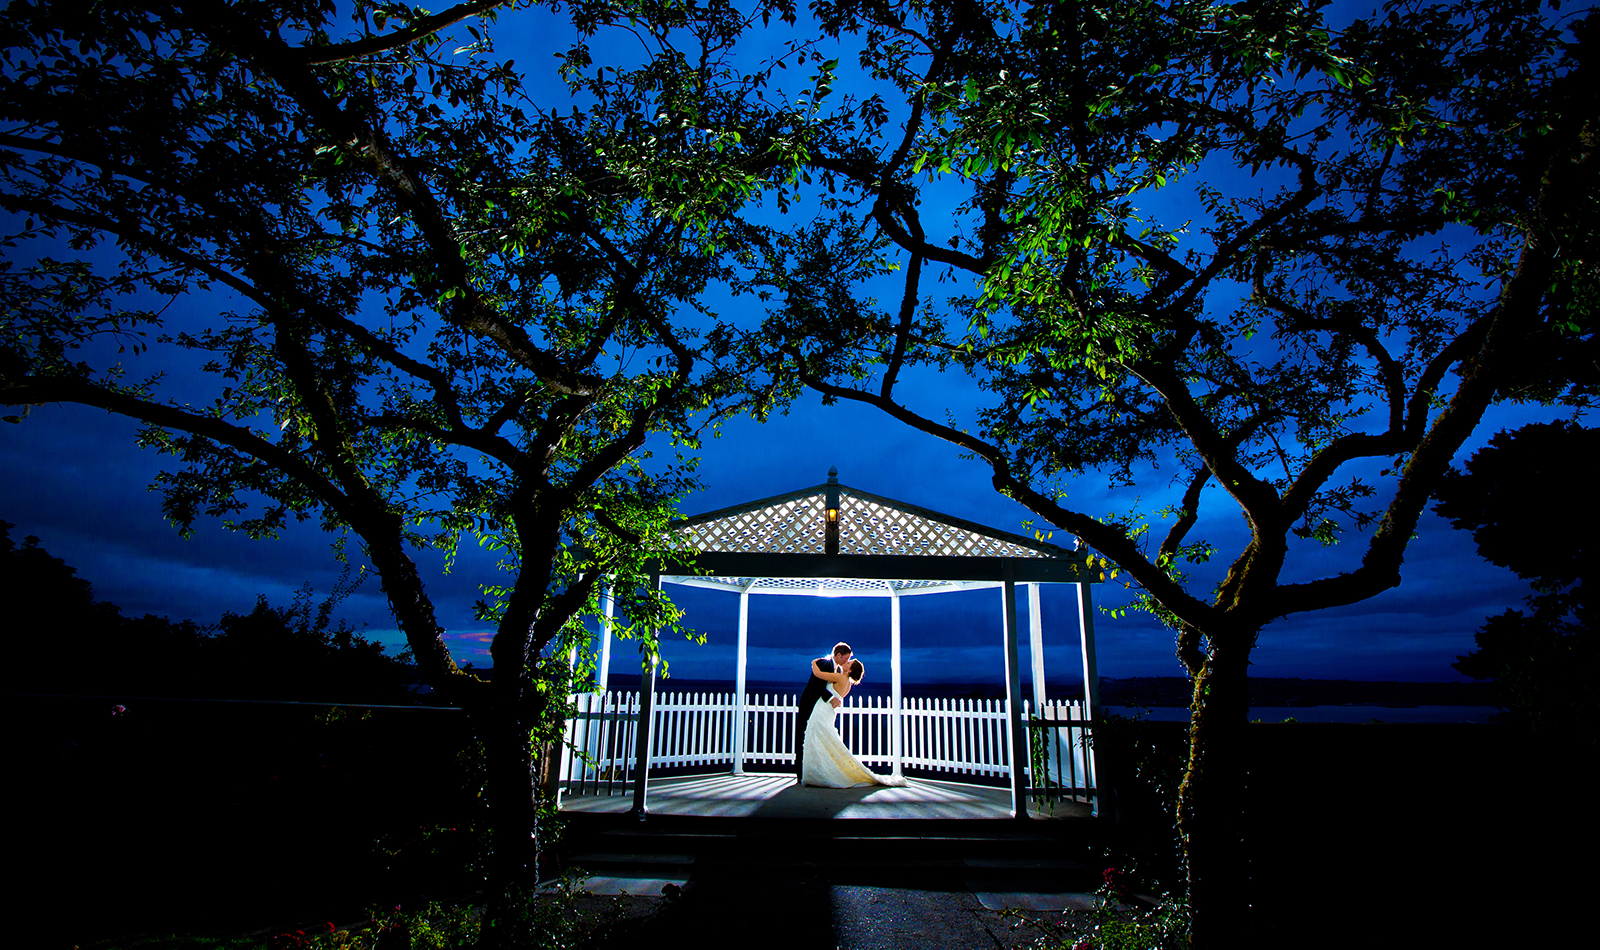 The wedding of Candace & Nigel at the Weyerhaeuser Estate in Tacoma. (Photo by Scott Eklund /Red Box Pictures)